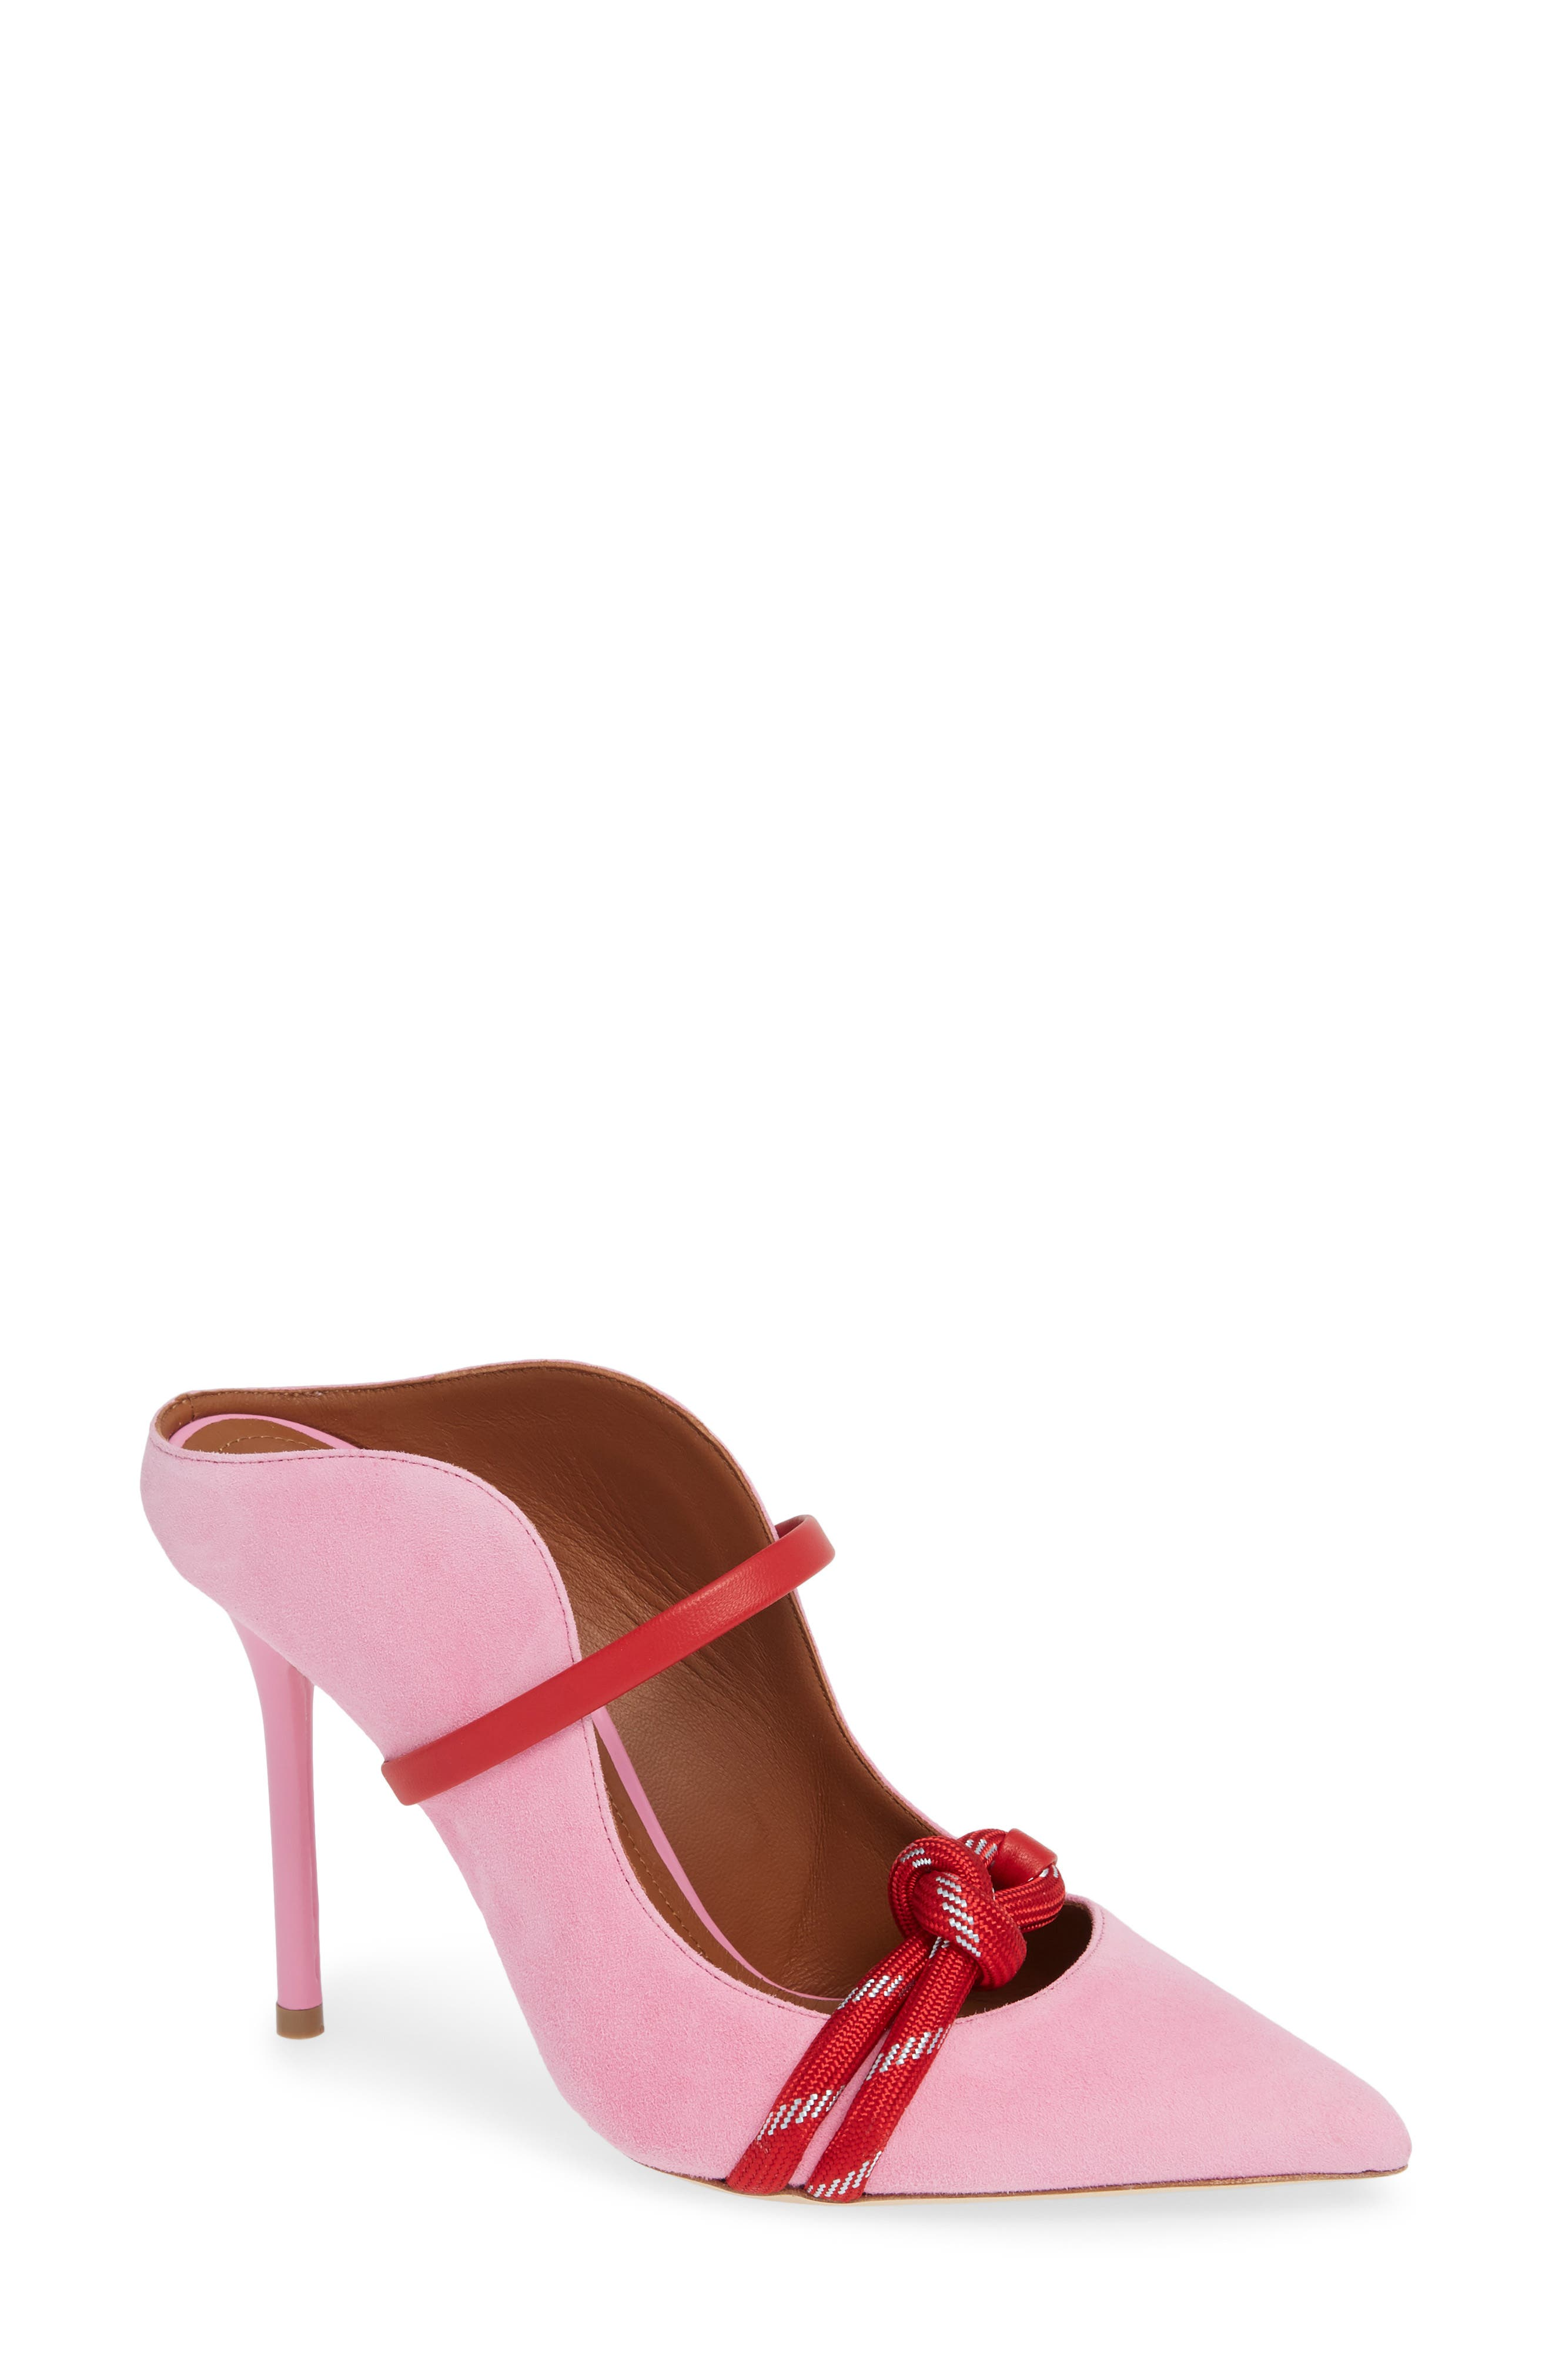 MALONE SOULIERS Rope Pump, Main, color, BUBBLEGUM/ RED